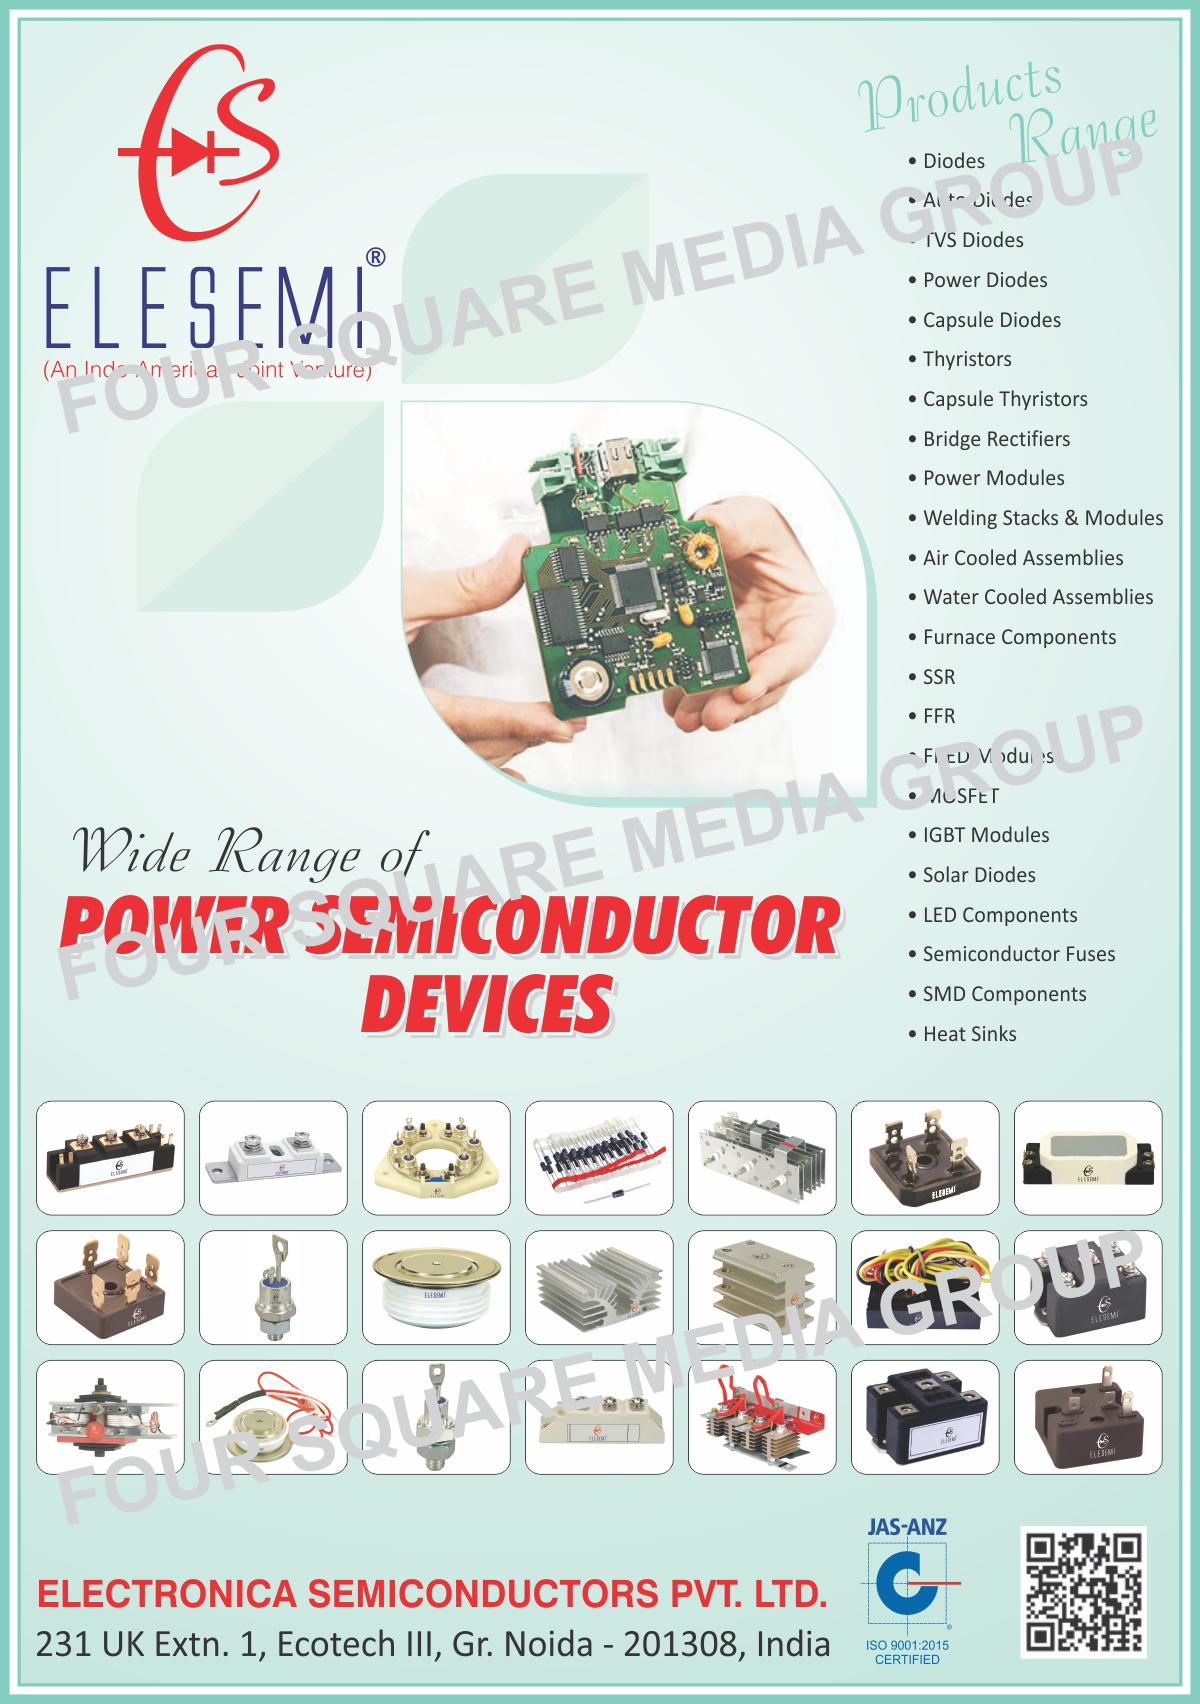 Power Semiconductor Devices, Diodes, Auto Diodes, TVS Diodes, Power Diodes, Capsule Diodes, Thyristors, Capsule Thyristors, Bridge Rectifiers, Power Modules, Welding Stacks, Welding Modules, Air Cooled Assemblies, Water Cooled Assemblies, Furnace Components, SSR, FFR, FRED Modules, Mosfets, IGBT Modules, Solar Diodes, Led Components, Semiconductor Fuses, SMD Components, Heat Sinks